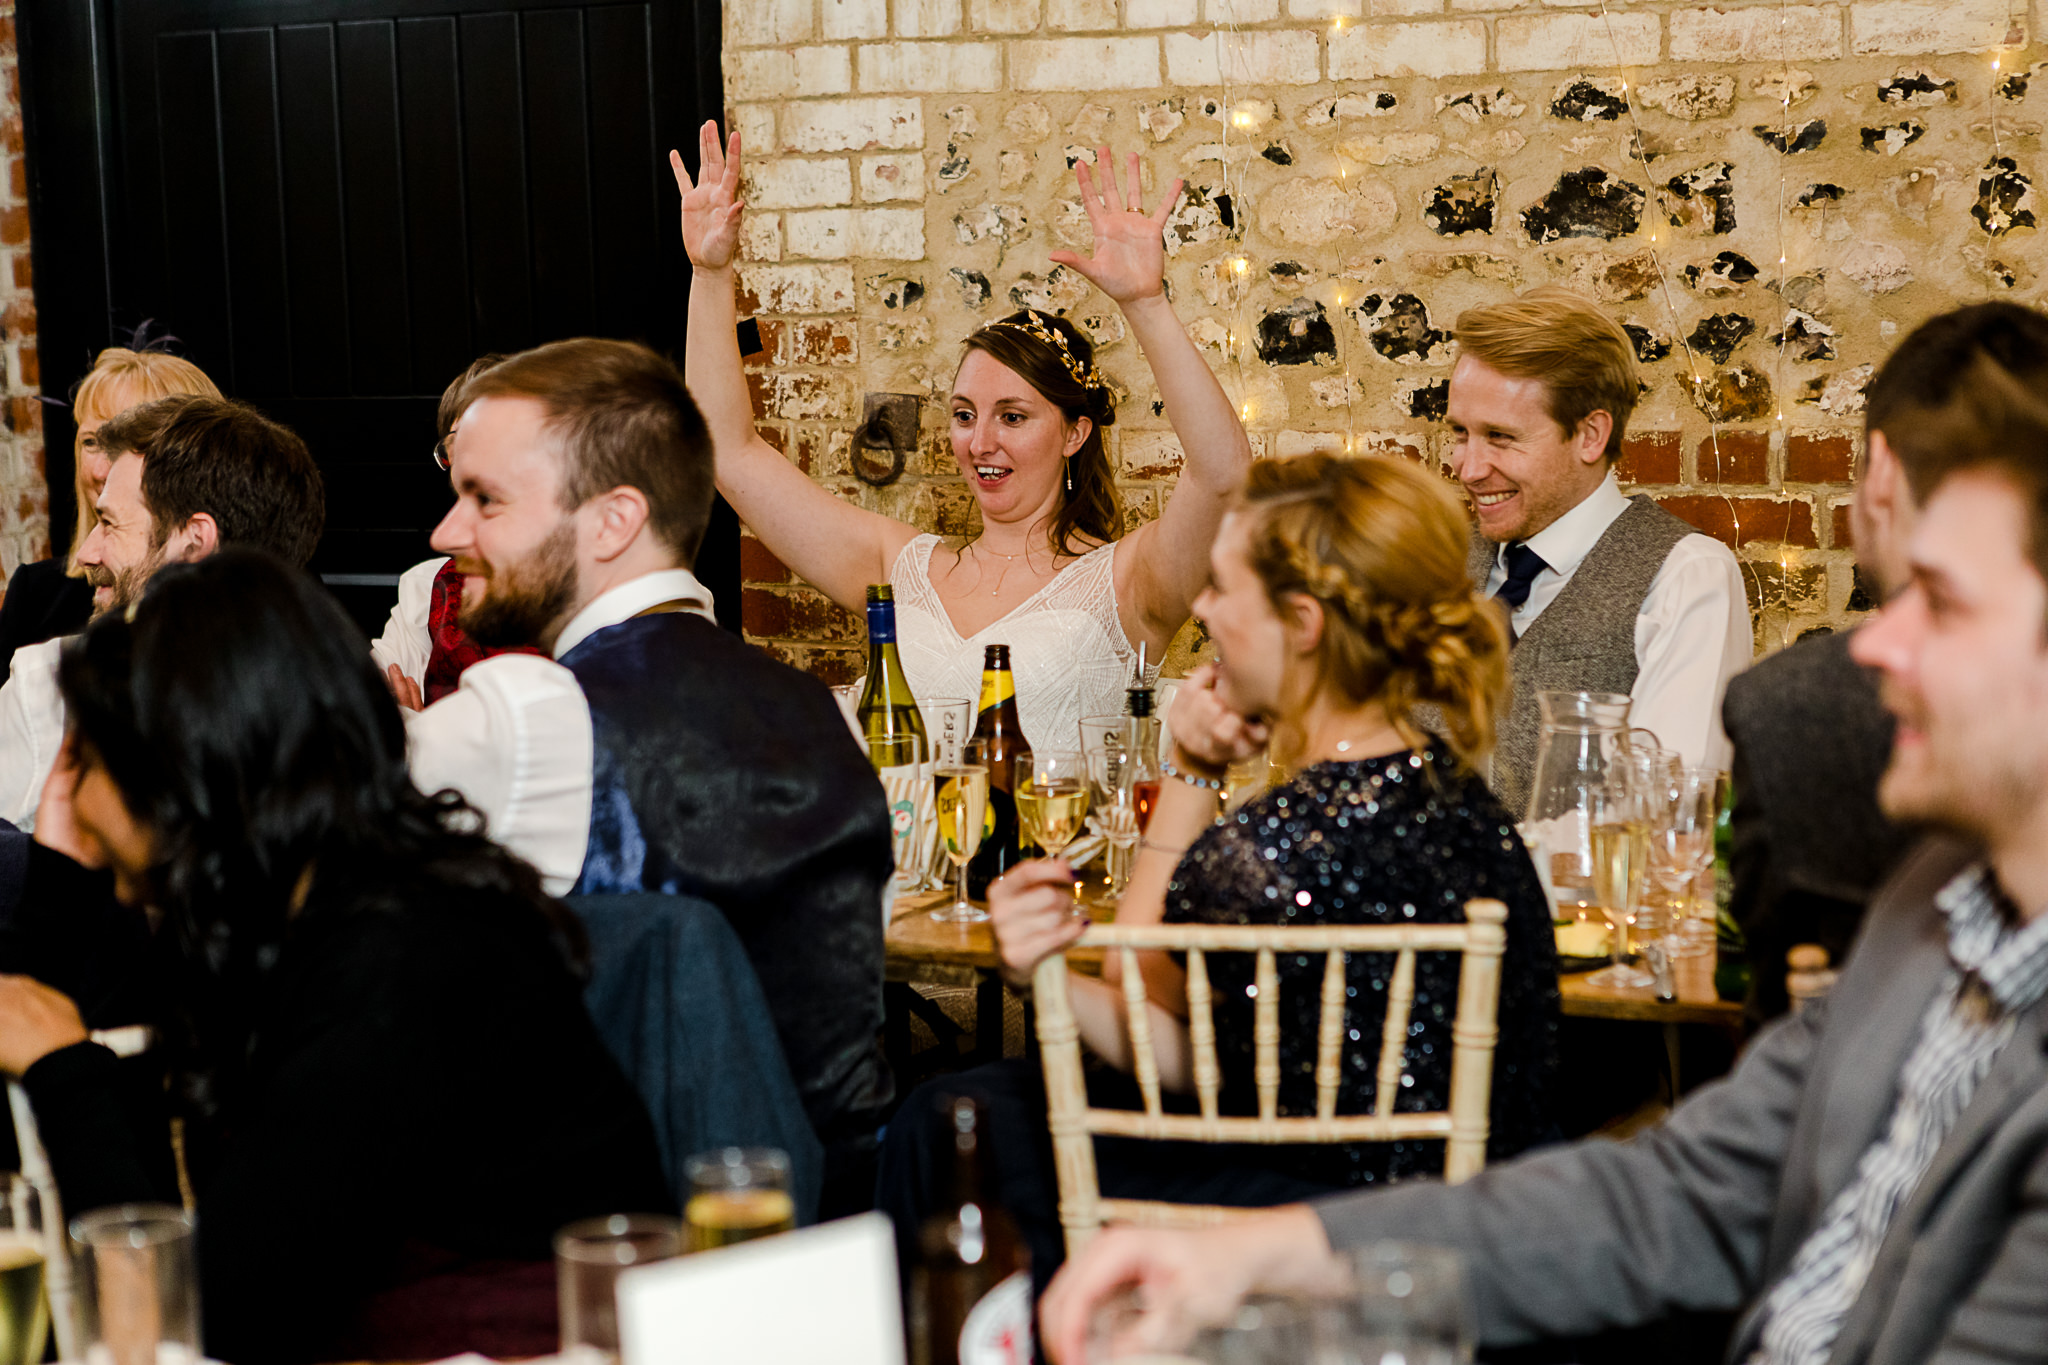 The Gathering Barn Wedding - Art by Design Photography - speeches 2